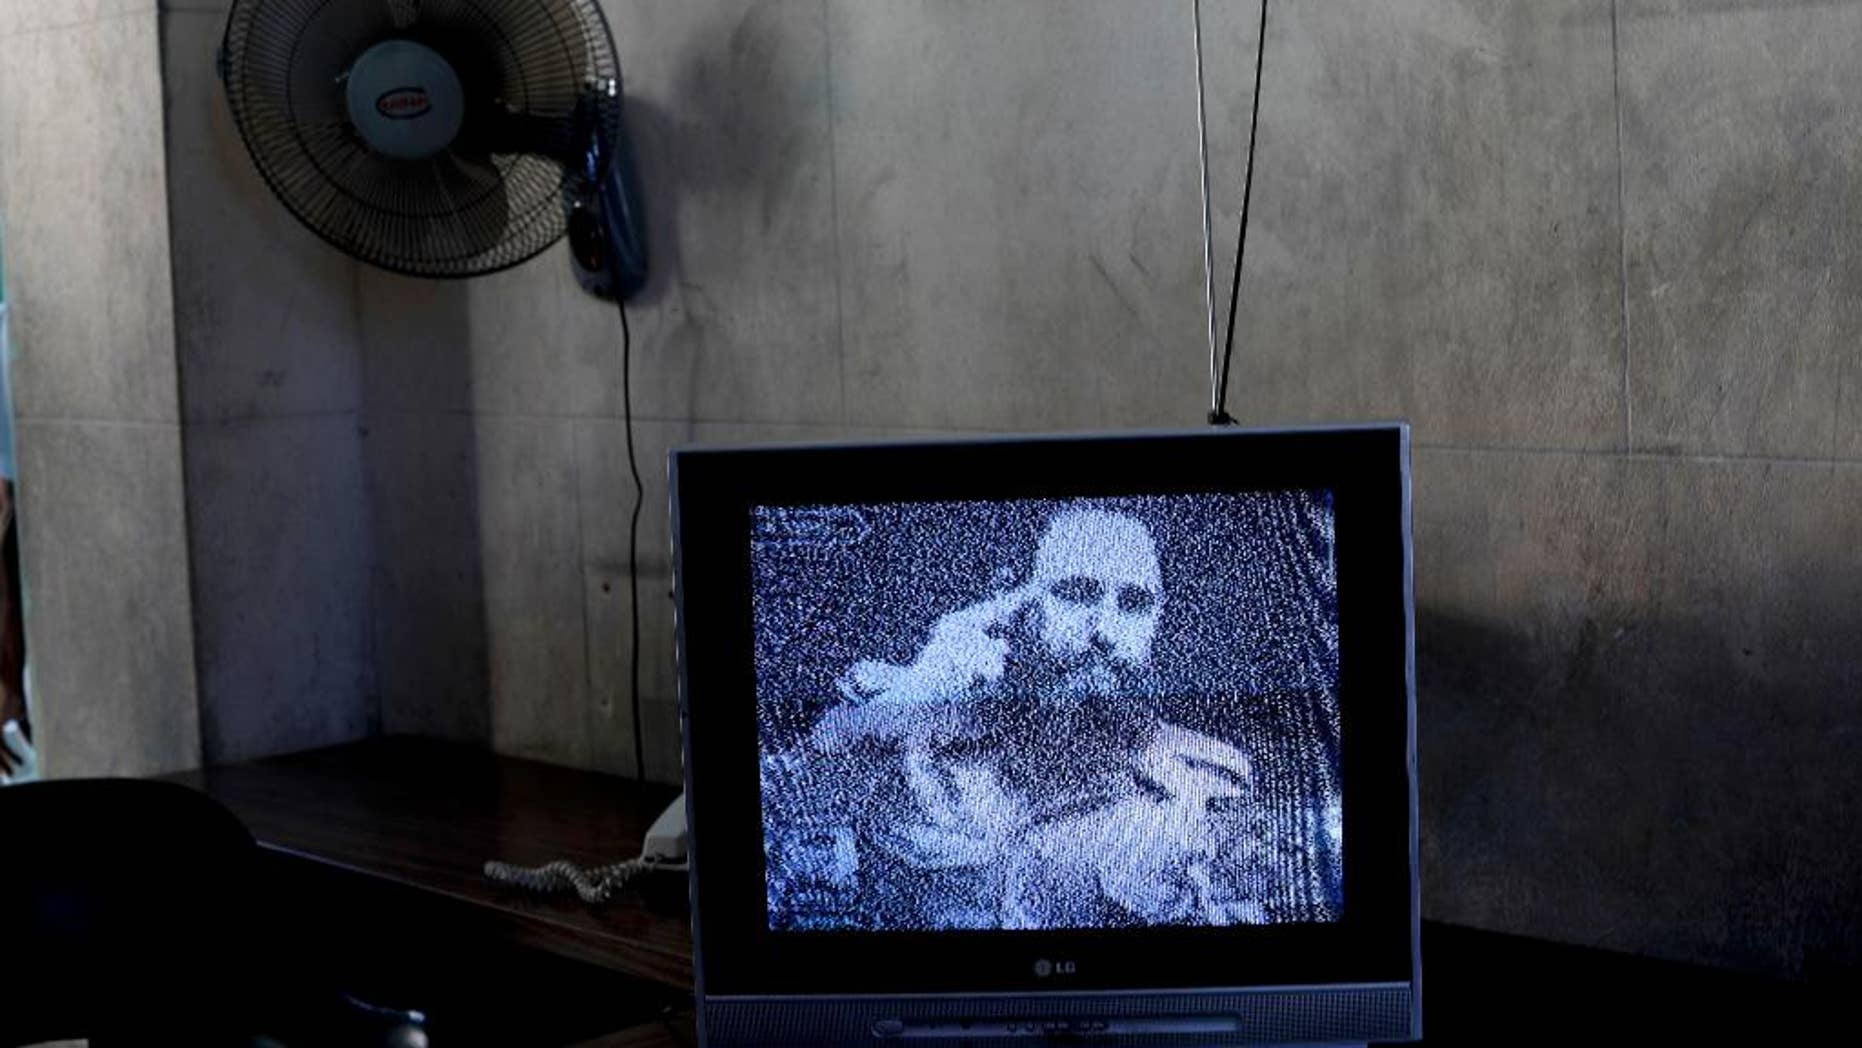 FILE - This Nov. 29, 2016 file photo shows a television broadcasting black and white footage of Fidel Castro at a memorial in his honor in Guanabacoa, on the outskirts of Havana, Cuba. With a shaking voice, President Raul Castro announced on state television that his older brother died Friday evening, Nov. 25. He was 90.  (AP Photo/Natacha Pisarenko, File)